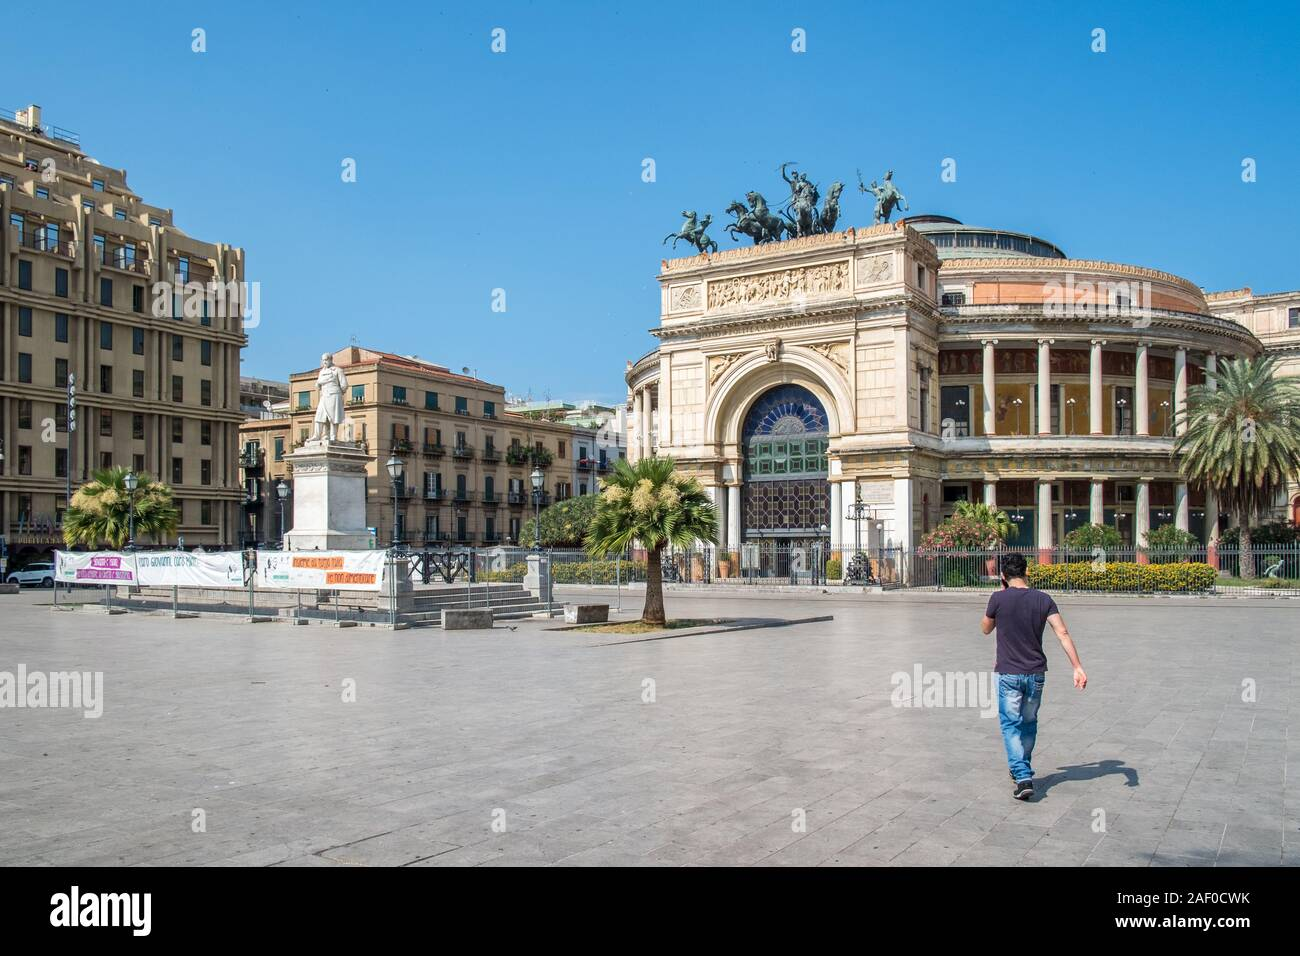 Teatro Politeama Garibaldi at Piazza Ruggero Settimo in Palermo, Sicily.  The theatre completed in 1891 was built for a variety of shows seating 5000 Stock Photo